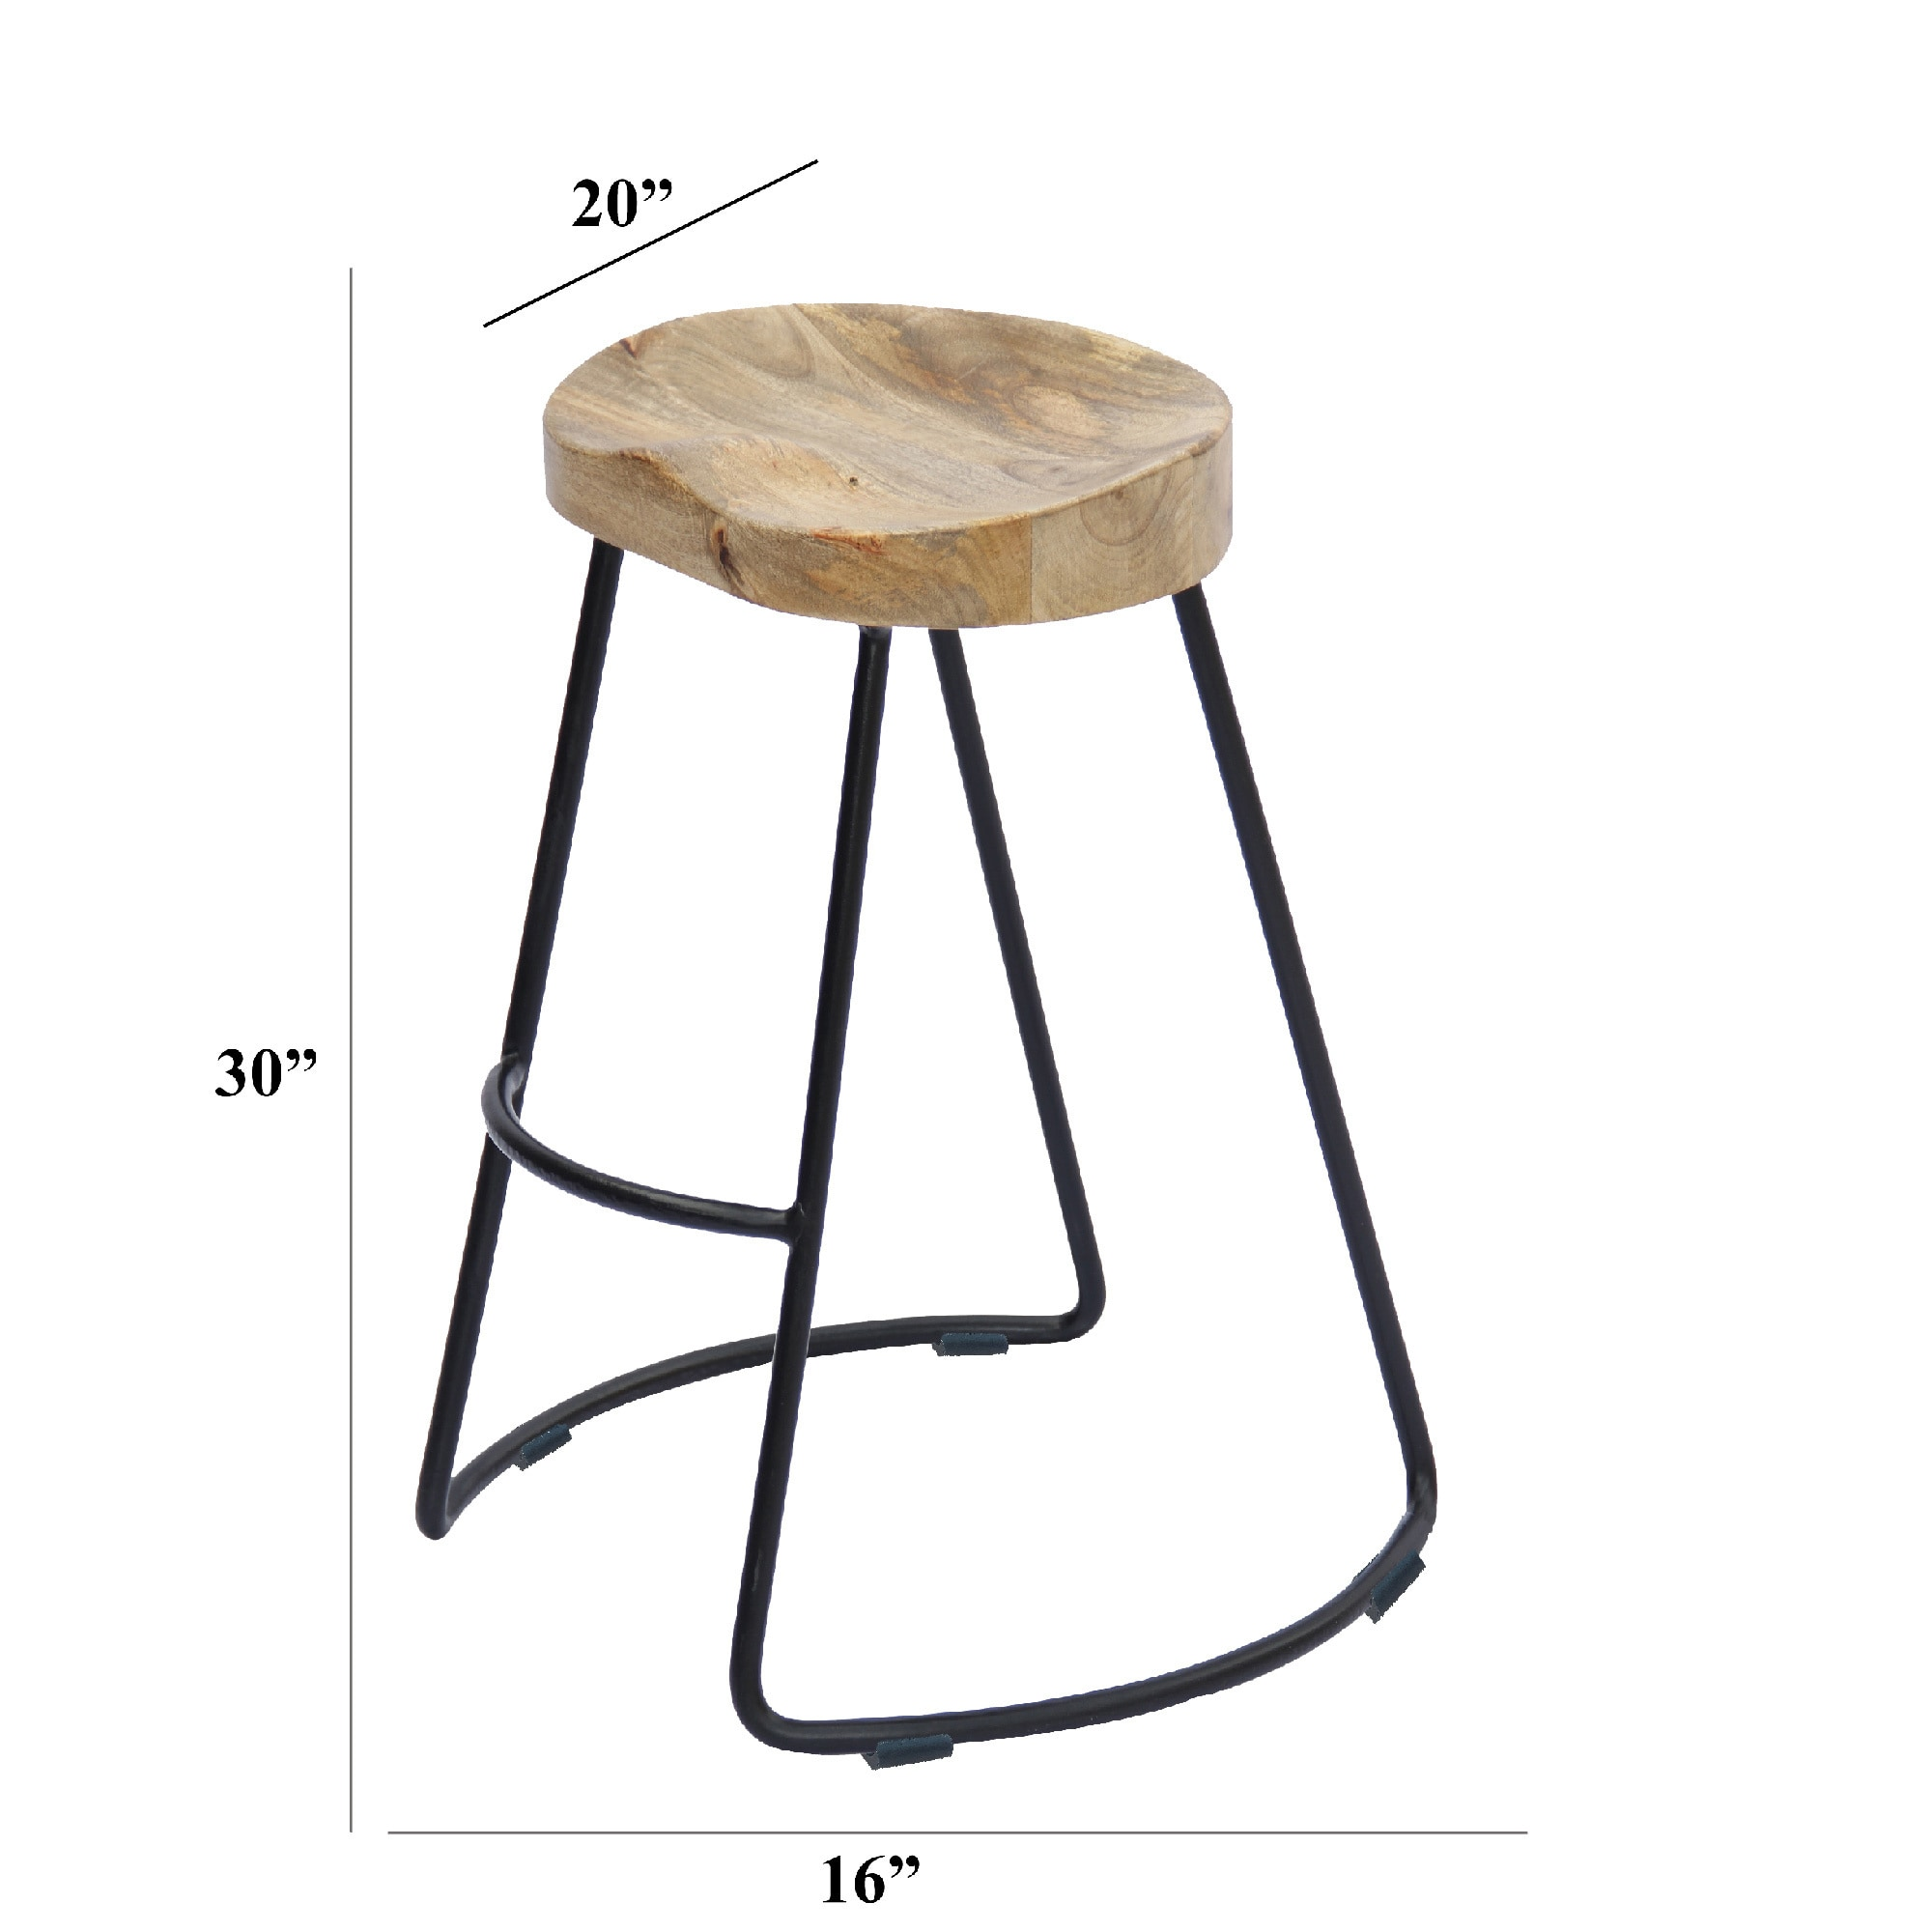 Swell Wooden Saddle Seat Barstool With Metal Legs Large Brown And Black Andrewgaddart Wooden Chair Designs For Living Room Andrewgaddartcom